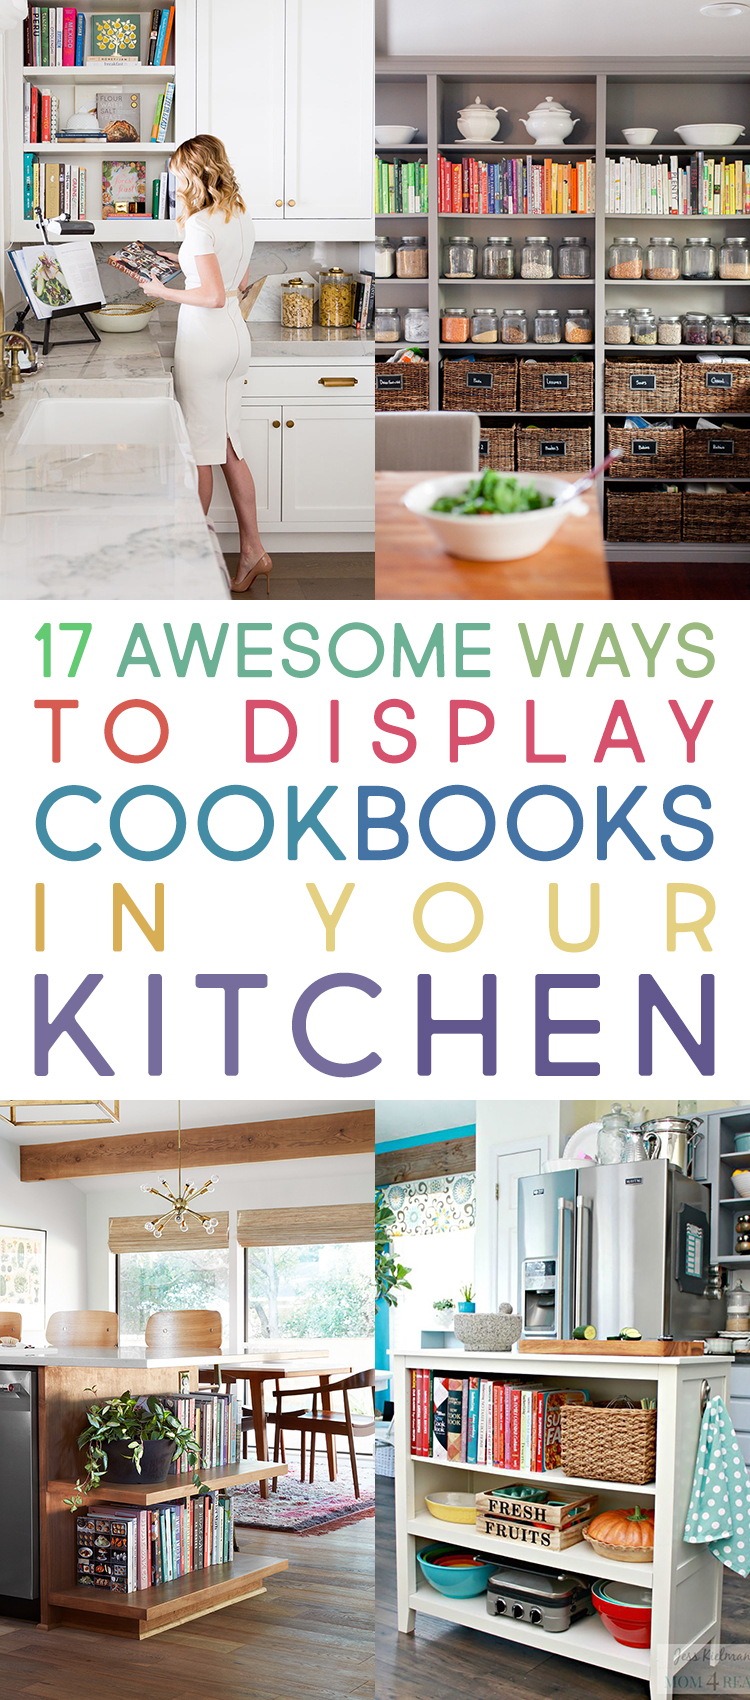 17 Awesome Ways To Display Cookbooks in Your Kitchen - The Cottage ...